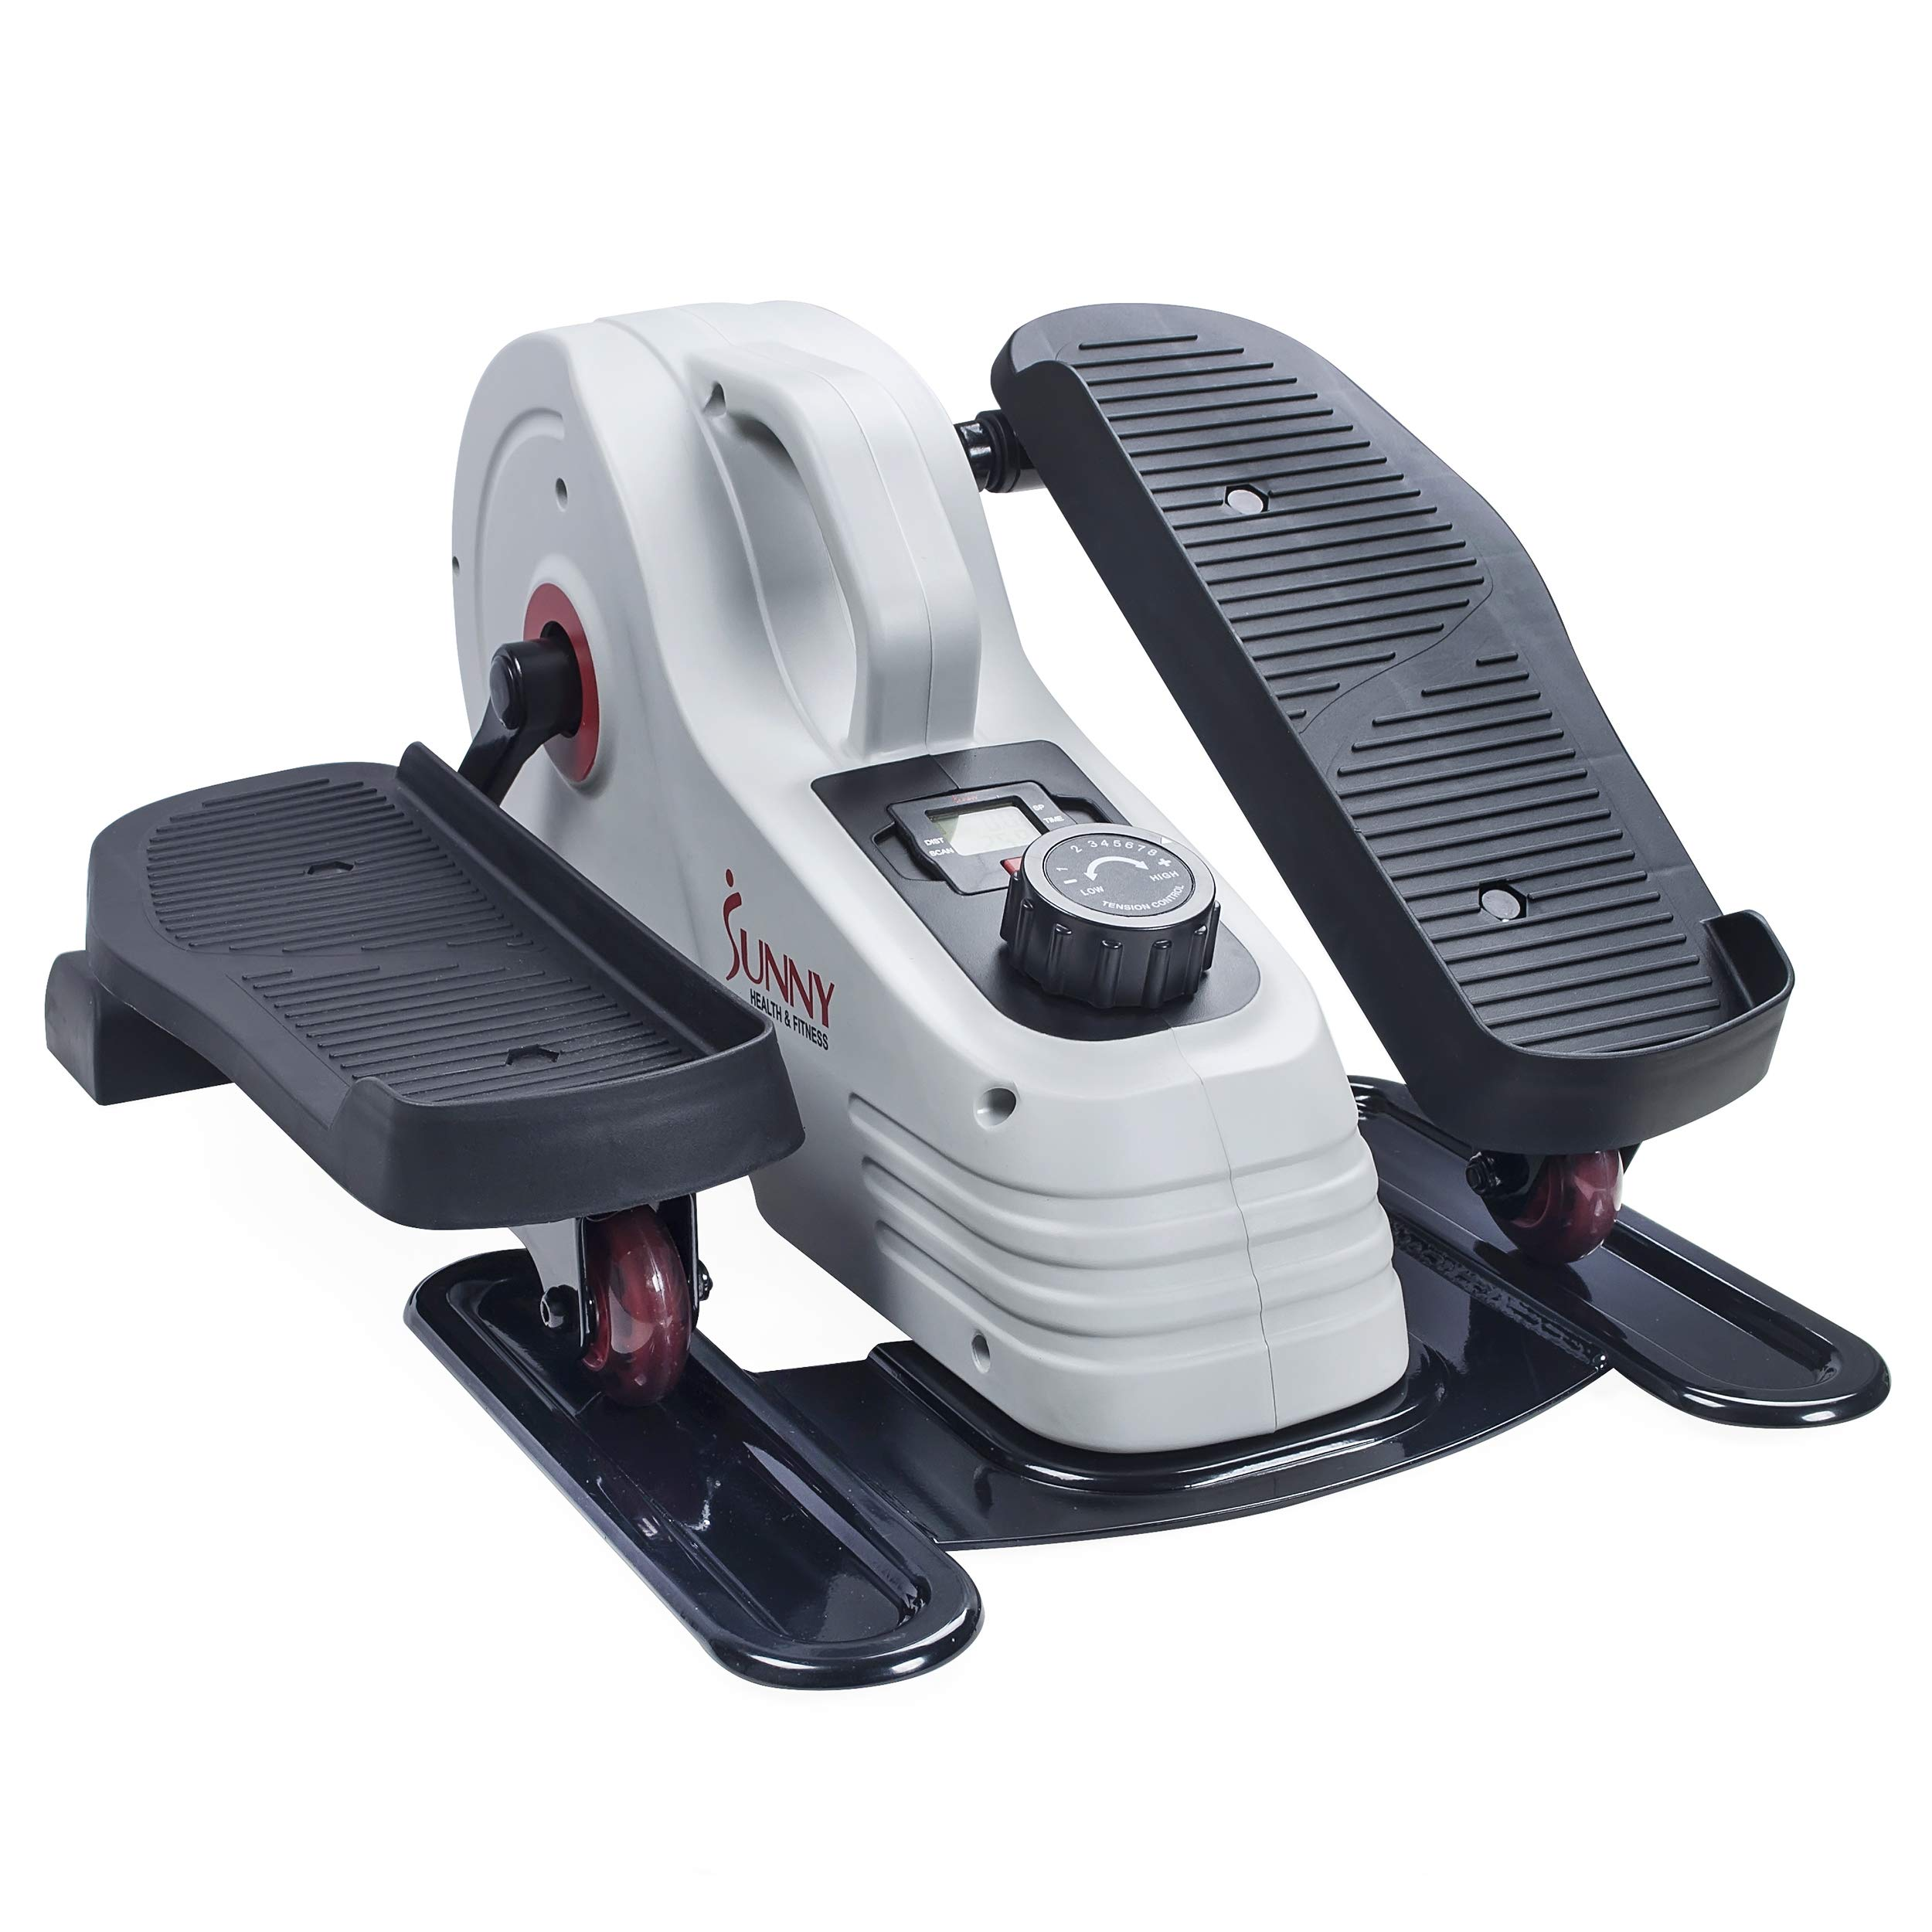 Sunny Health & Fitness Fully Assembled Magnetic Under Desk Elliptical - SF-E3872 by Sunny Health & Fitness (Image #3)